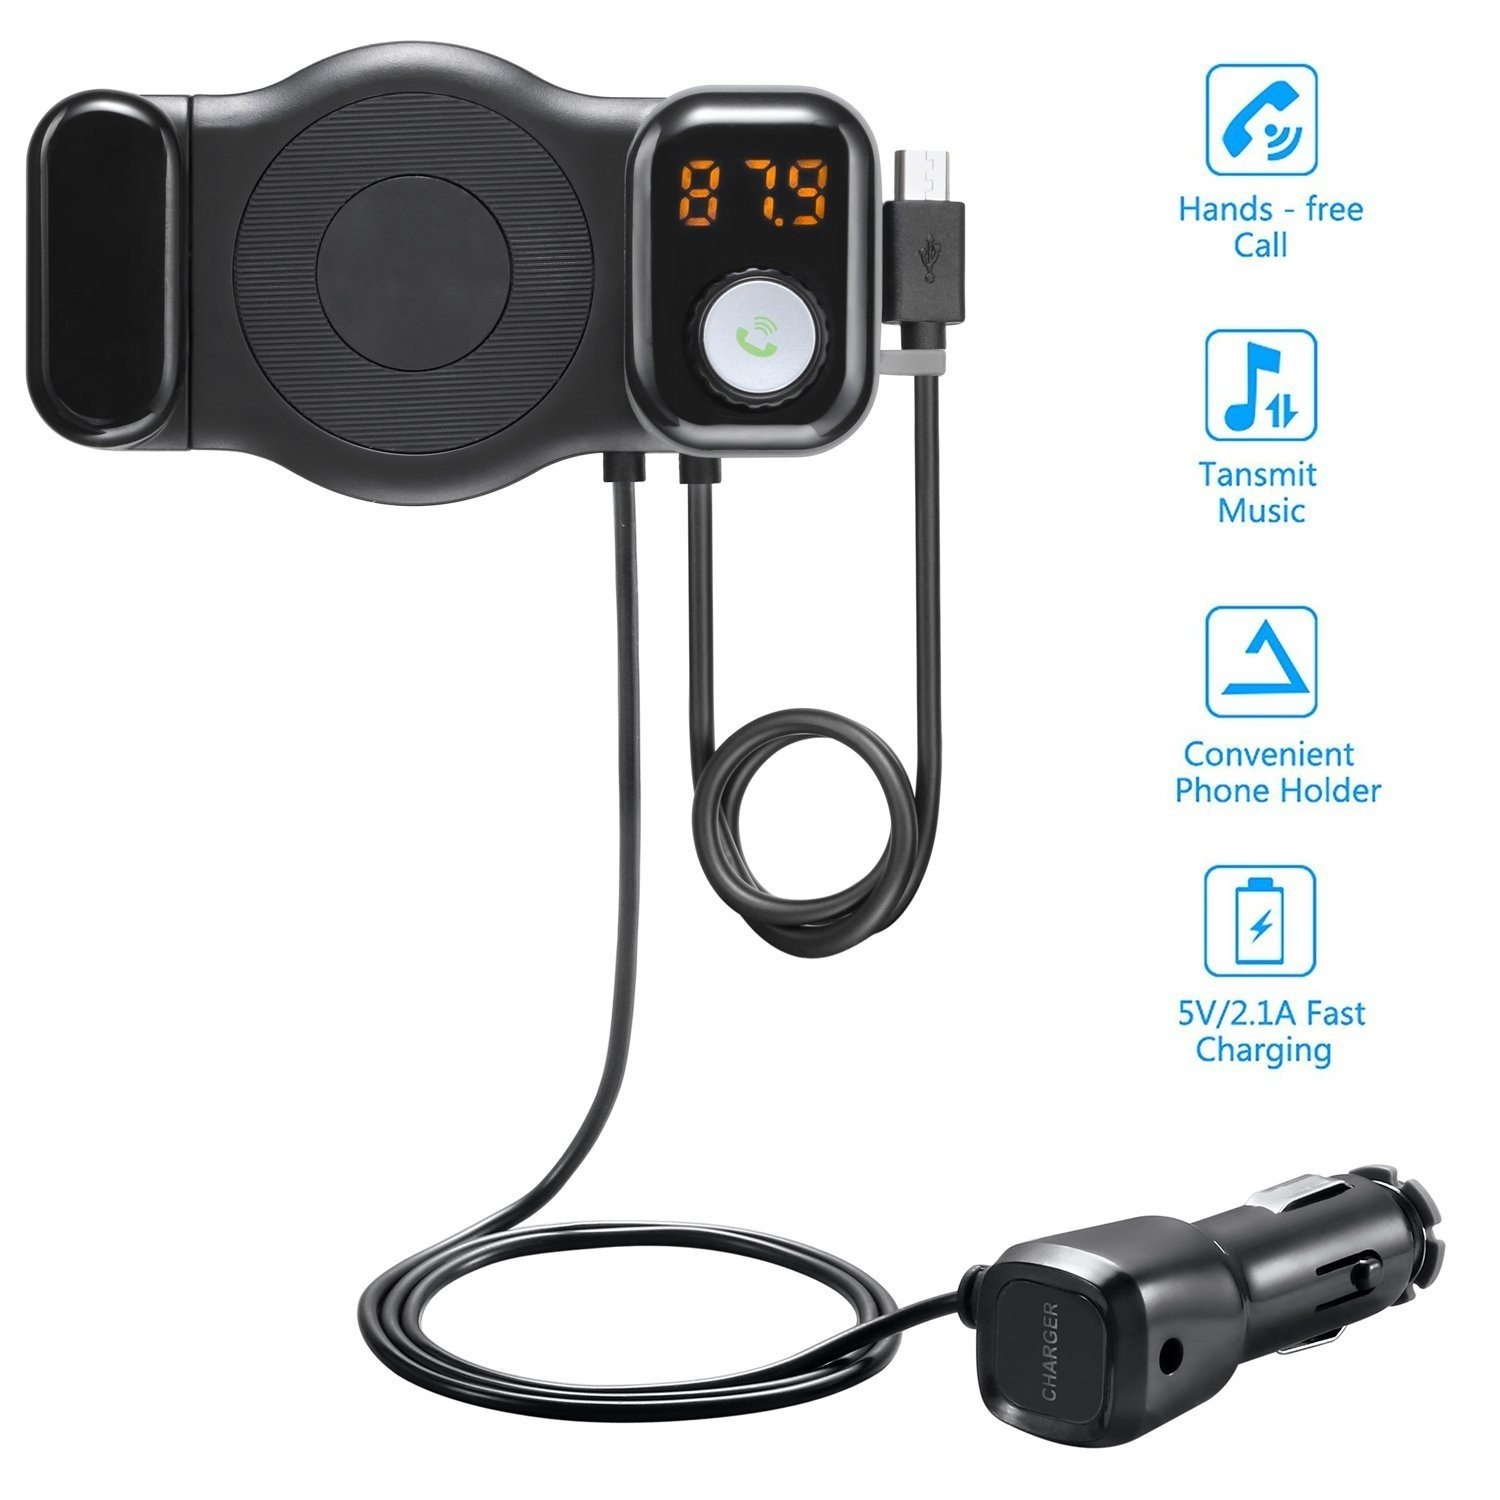 New Bluetooth FM Transmitter, Showerstar123 Wireless Car Radio FM Transmitter Radio Adapter Car Phone Mount USB Car Adapter Handsfree Car Kit - Black